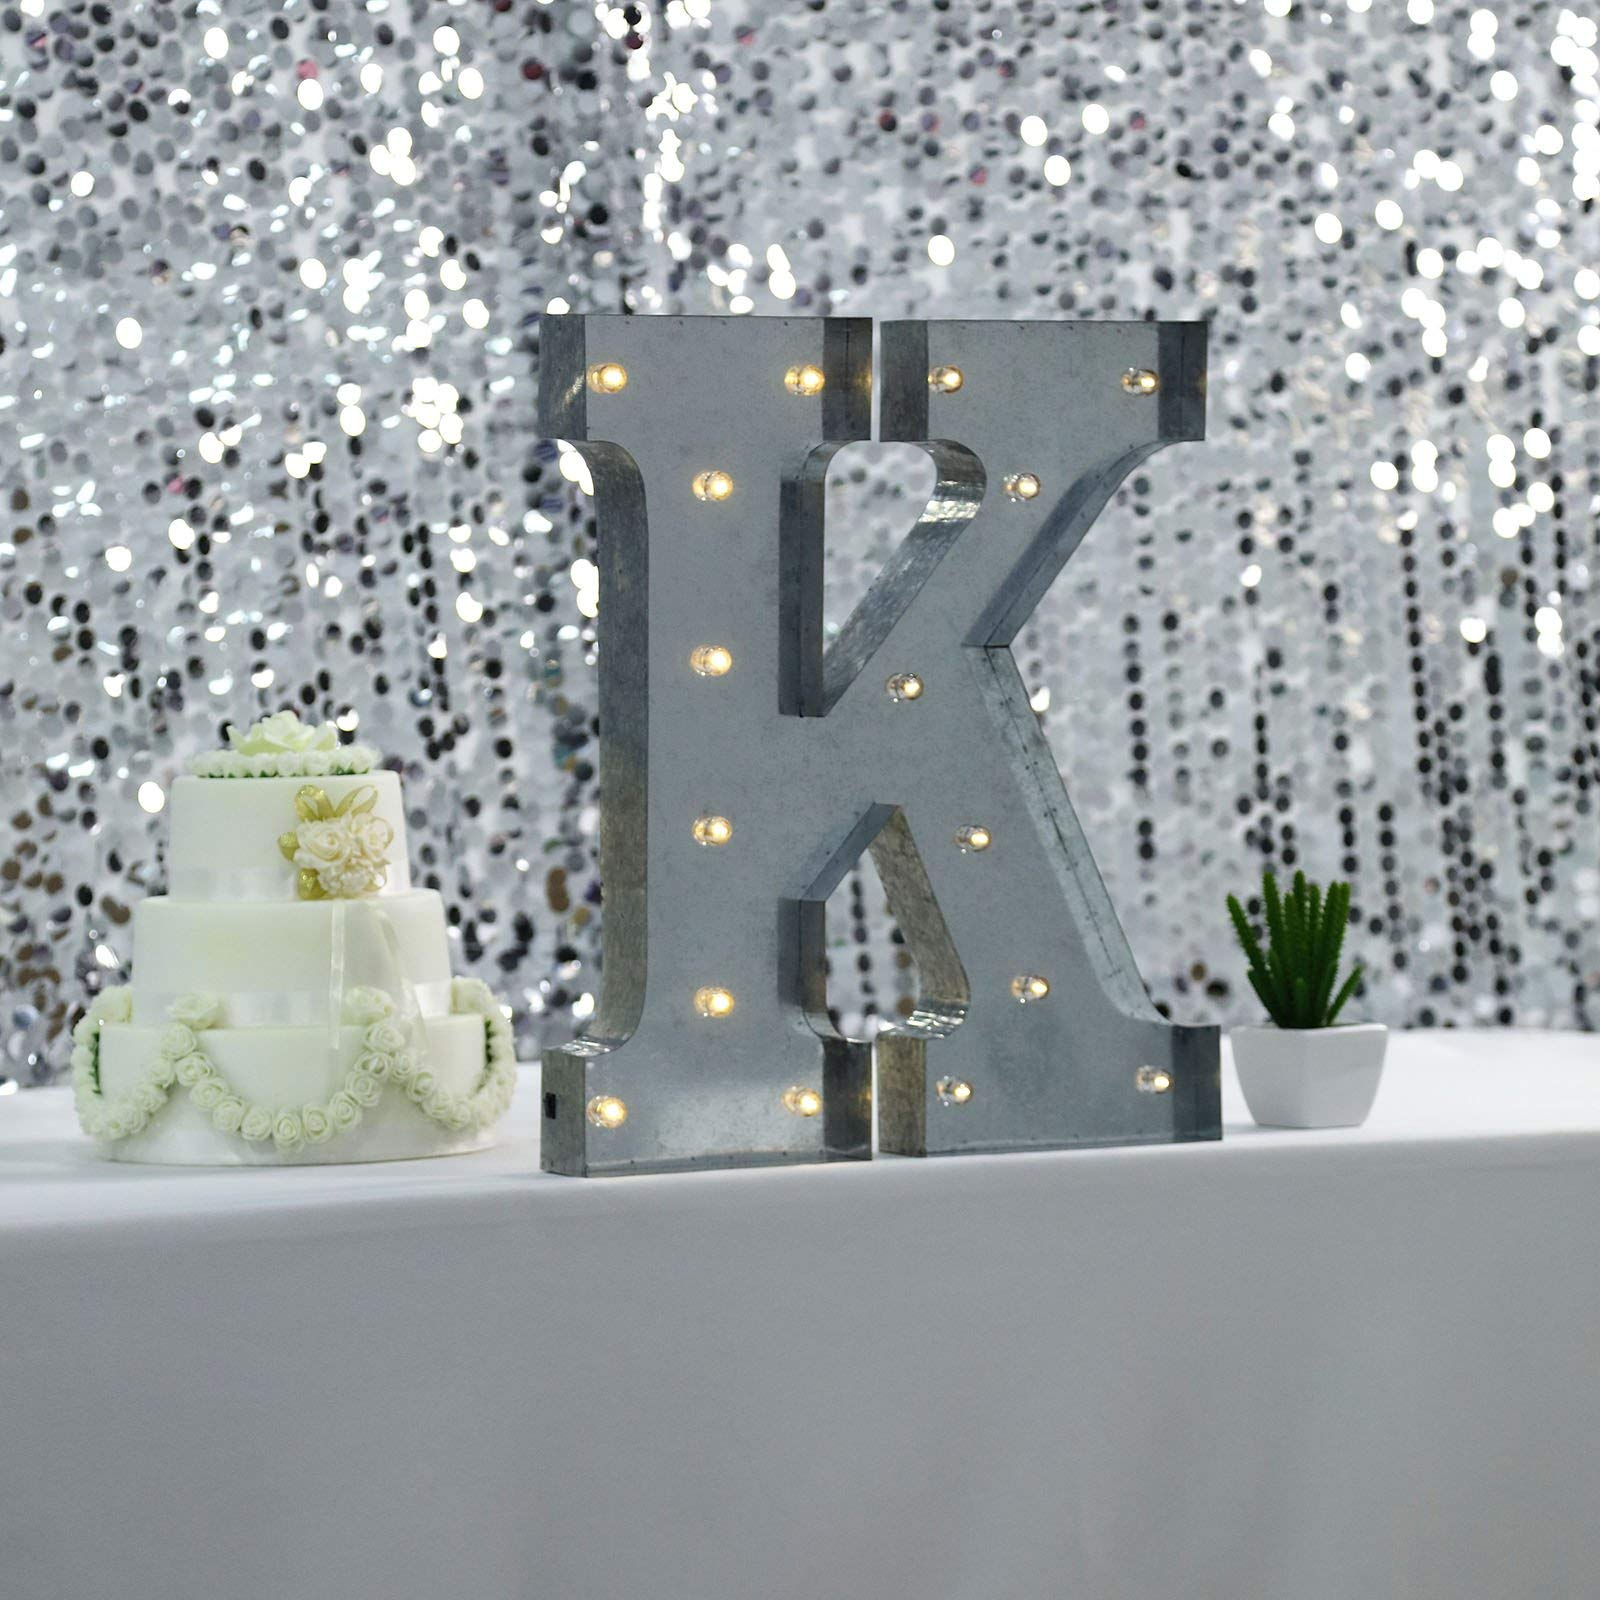 Tableclothsfactory 2 FT | Vintage Metal Marquee Letter Lights Cordless with 16 Warm White LED - K by Tableclothsfactory